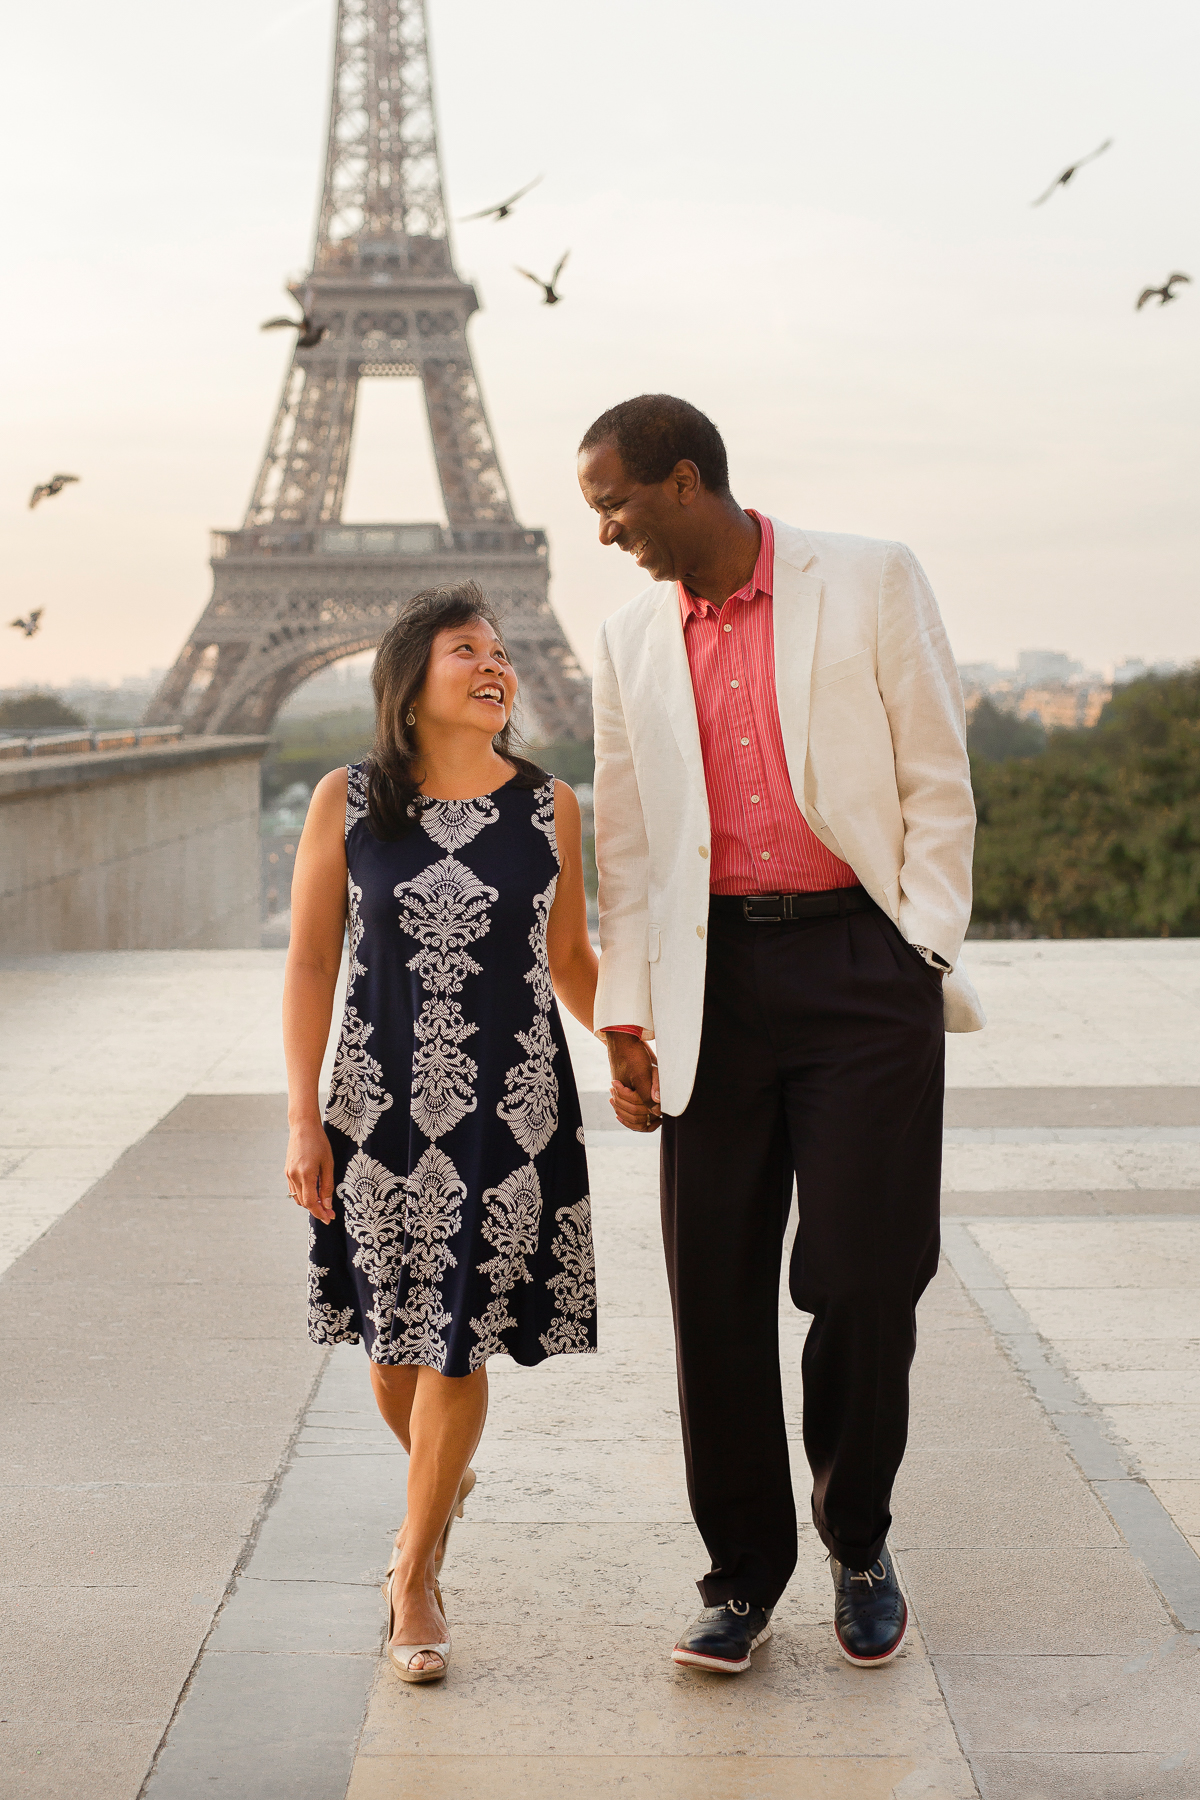 Romantic-Parisian-Couples-Anniversary-Photo-Session-Paris-Photographers-Katie-Donnelly-Photography_001.jpg